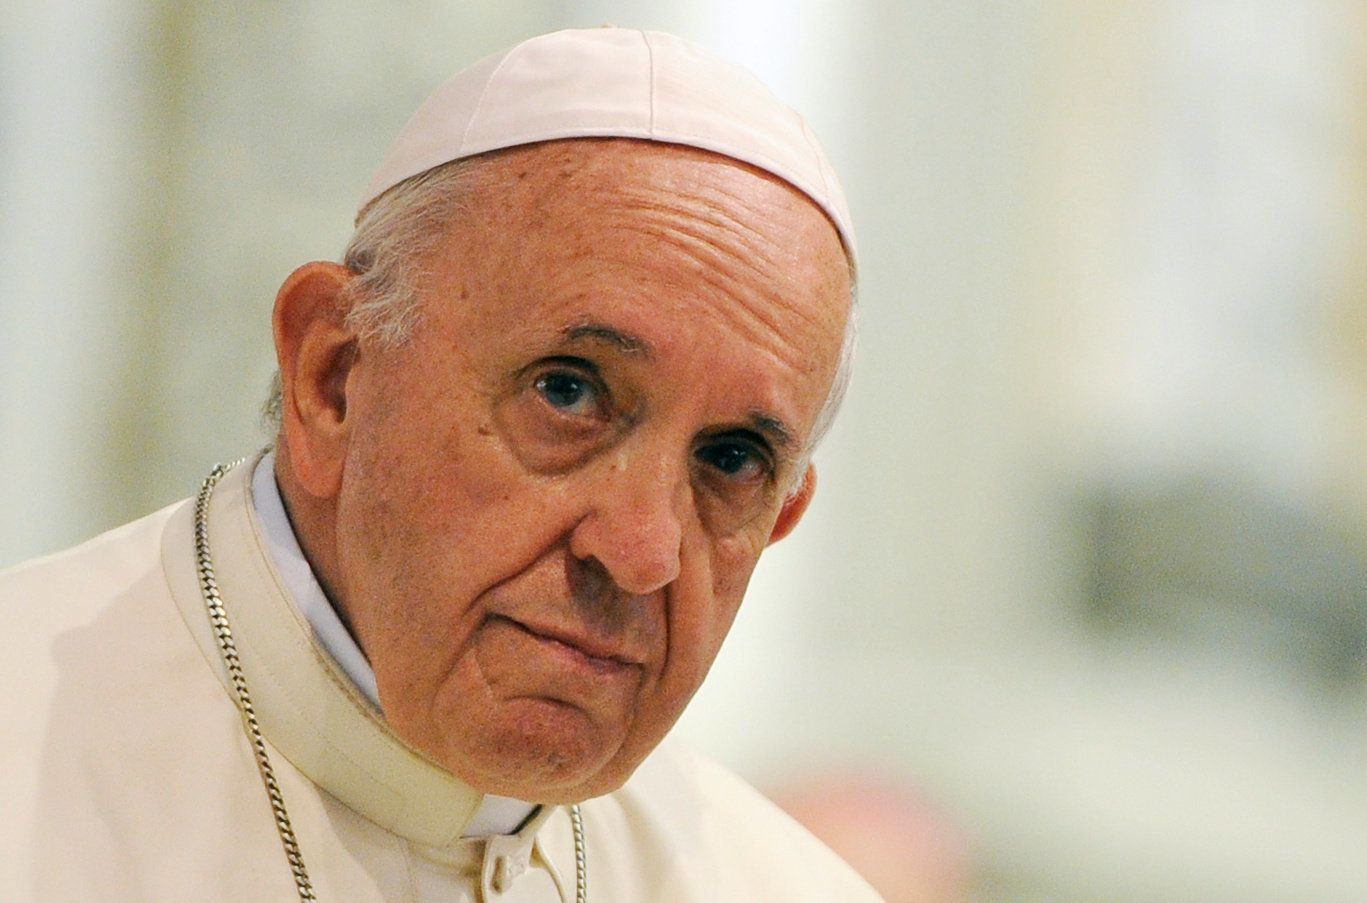 Pope Francis has been accused of rehabilitating a disgraced ex-cardinal from sanctions imposed by Pope Benedict XVI.